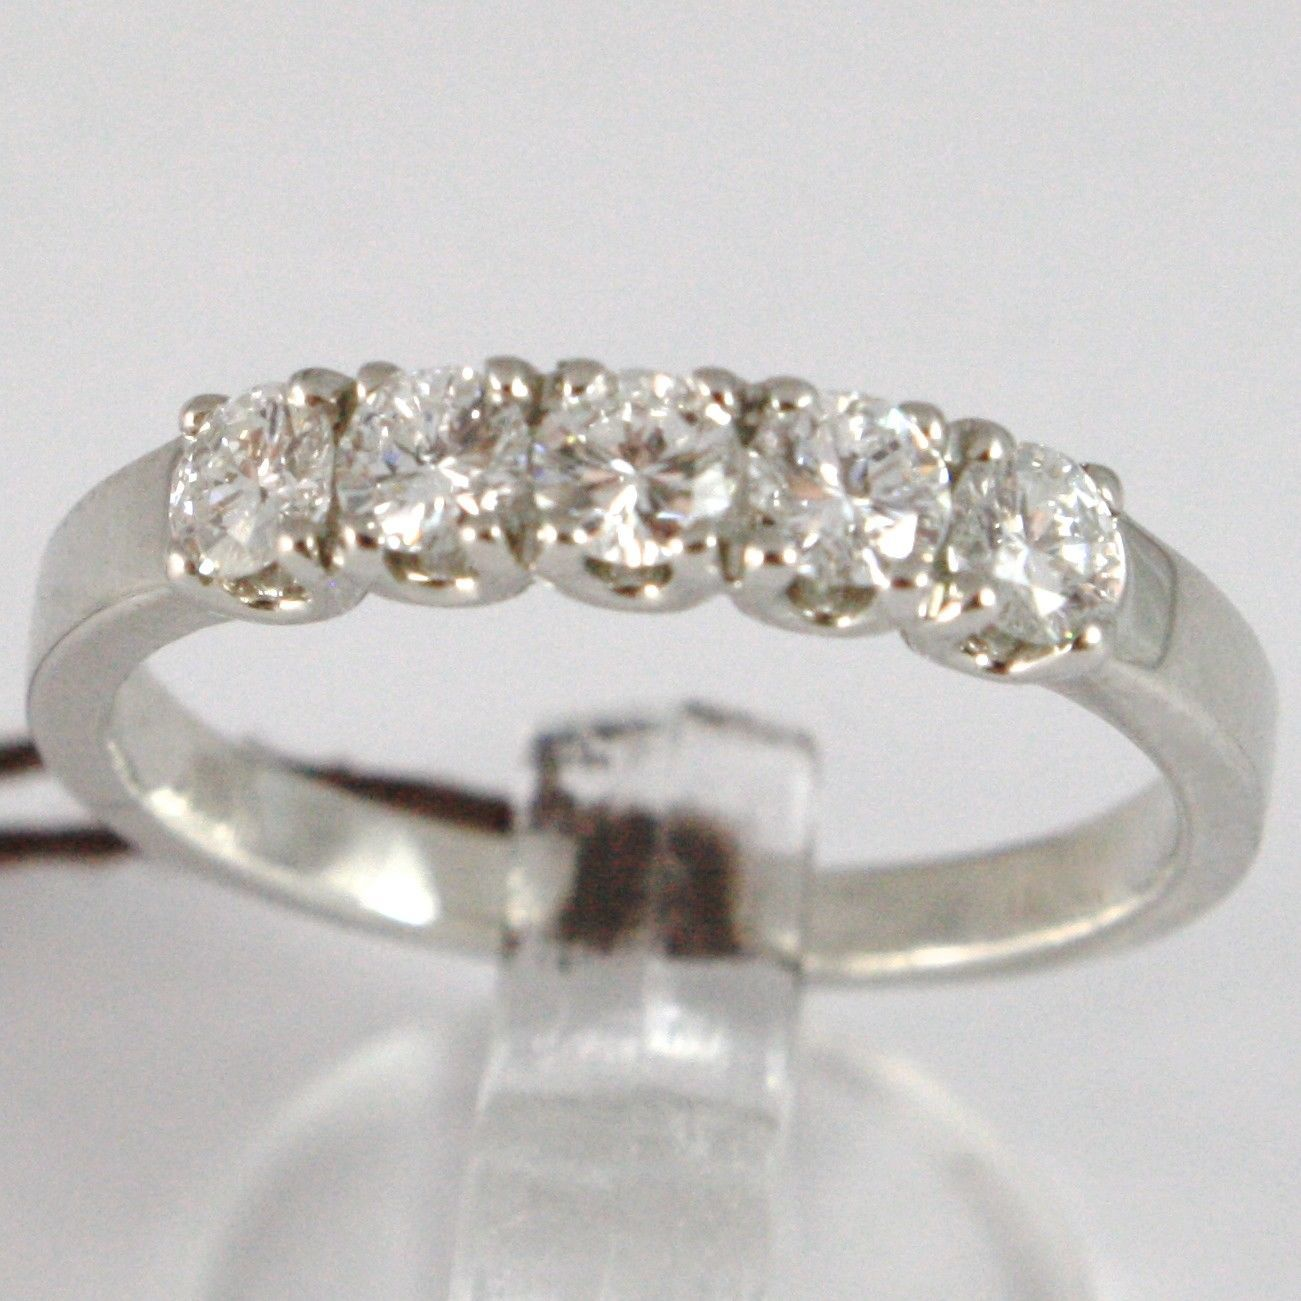 ANILLO DE ORO BLANCO 750 18 CT,VERETTA 5 DIAMANTES QUILATES TOTAL 0.53,VÁSTAGO